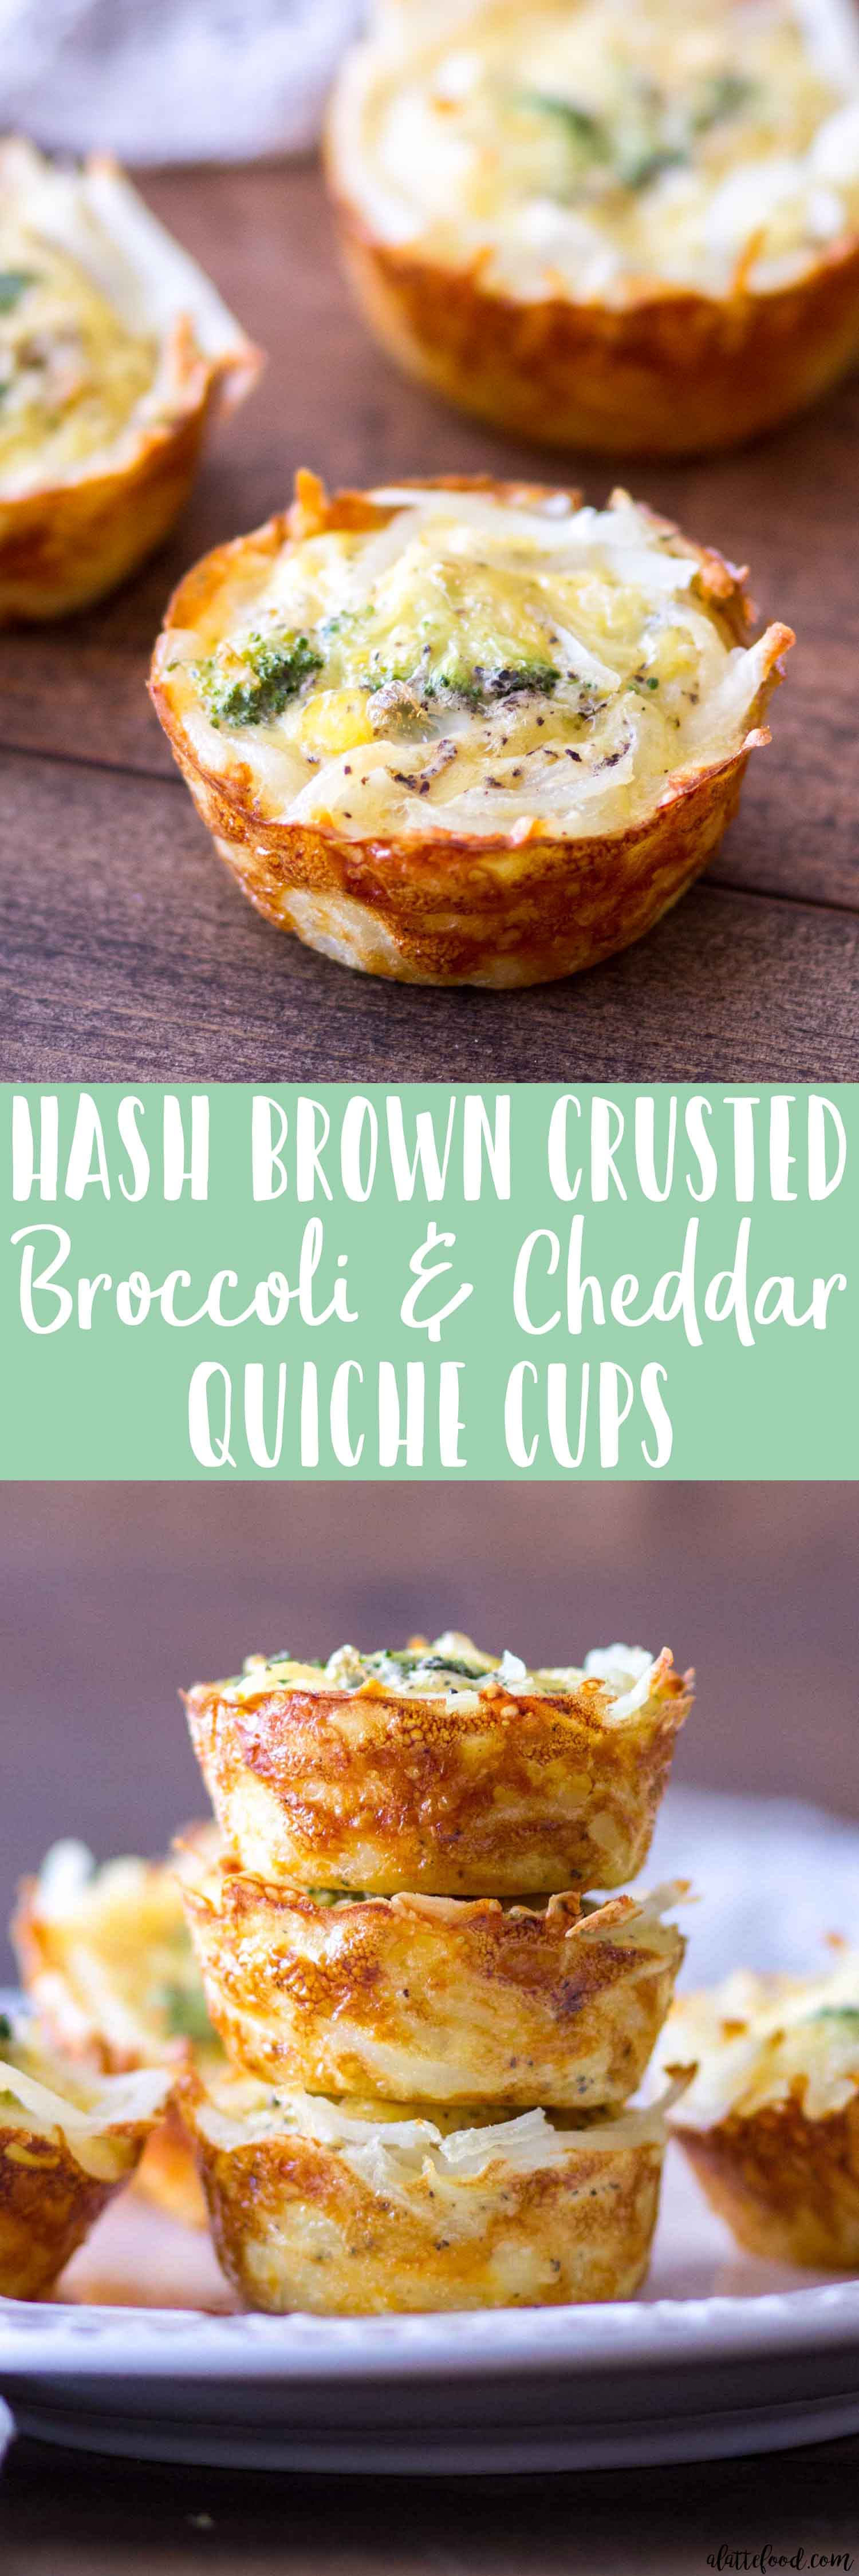 HASH BROWN CRUSTED BROCCOLI CHEDDAR QUICHE CUPS